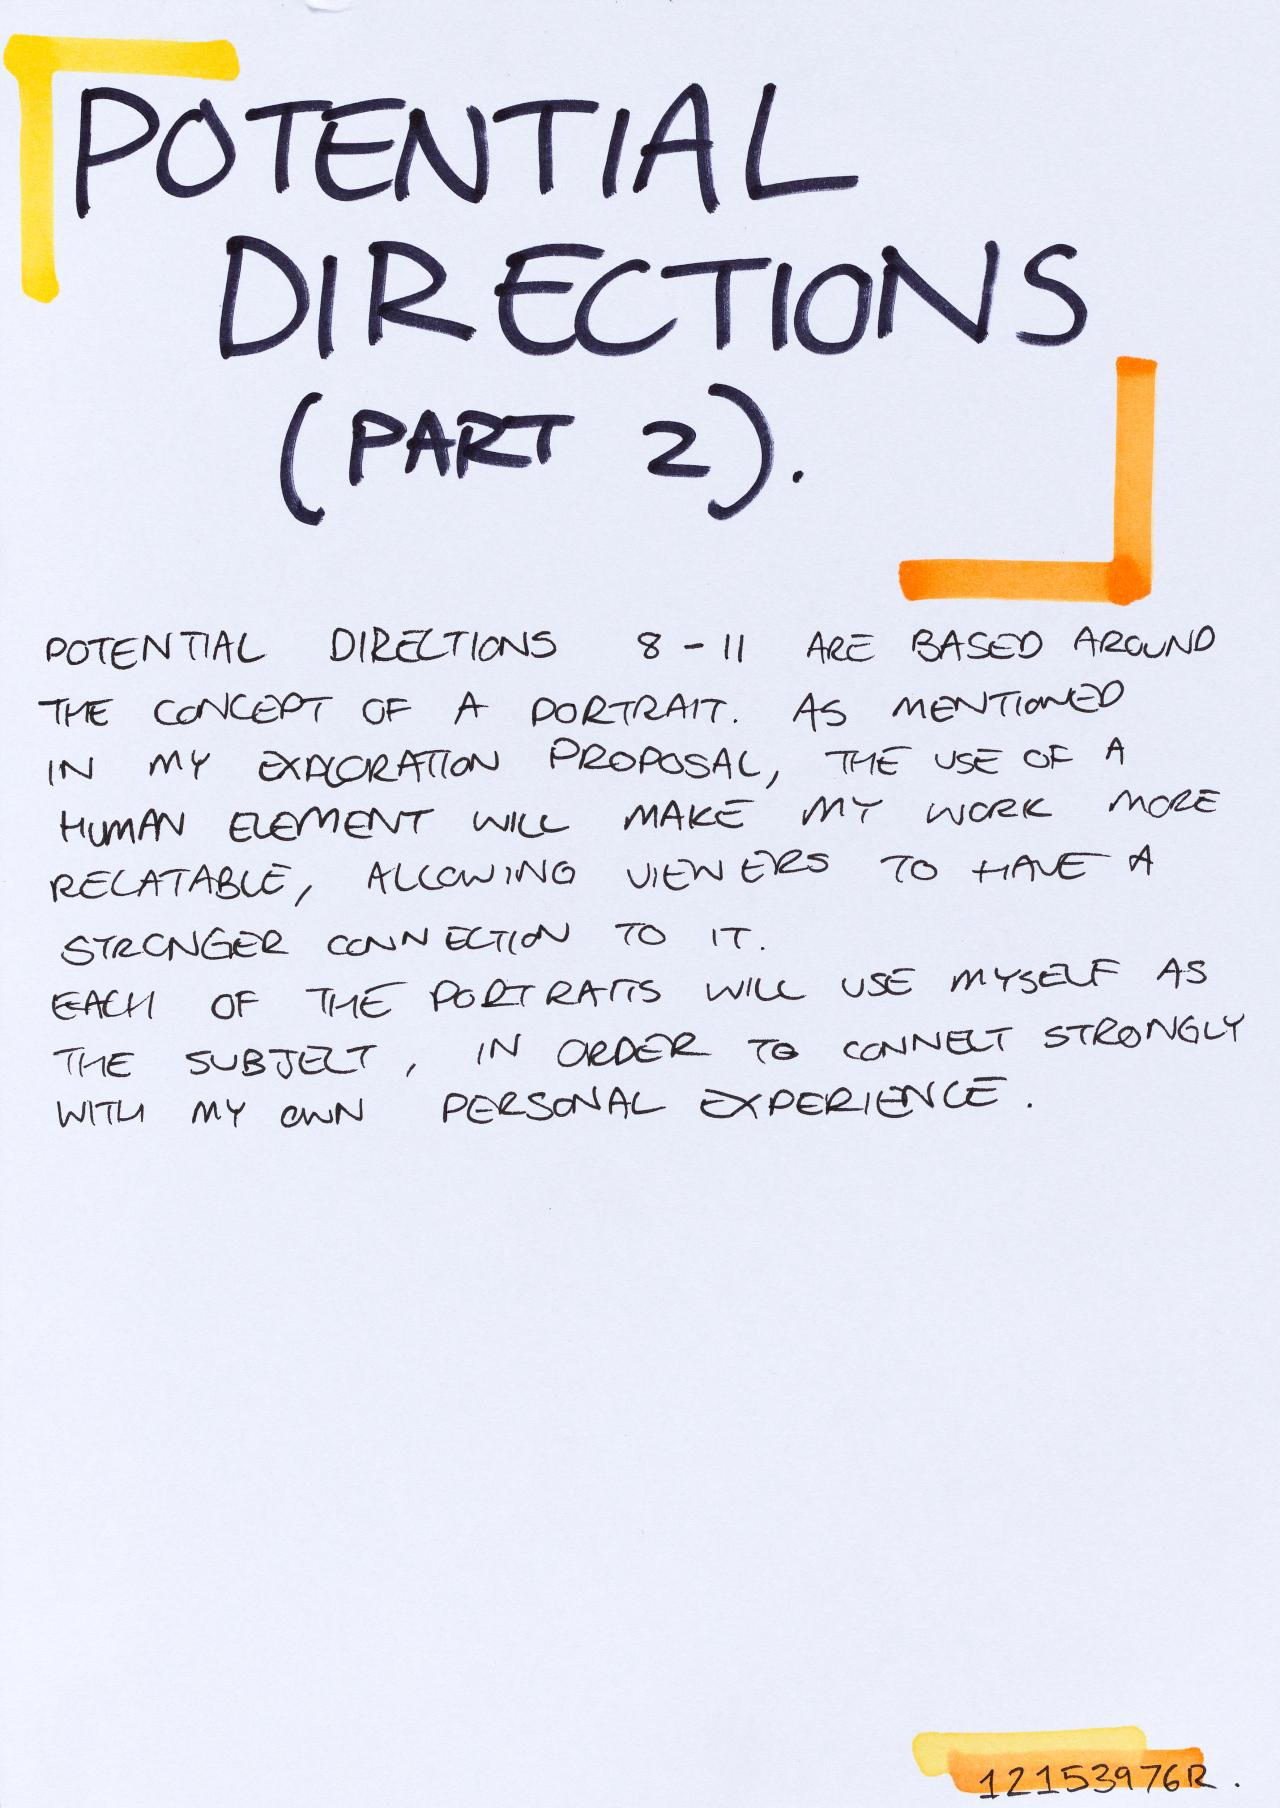 ethical issue in information systems essay There are many unique challenges we face in this age of information the ethical issues involved are many and varied, however, it is helpful to focus on just four the factory system, as adam smith described in his essay on the pin factory, effectively replaced the laborer's contribution of his energy and of his skills.